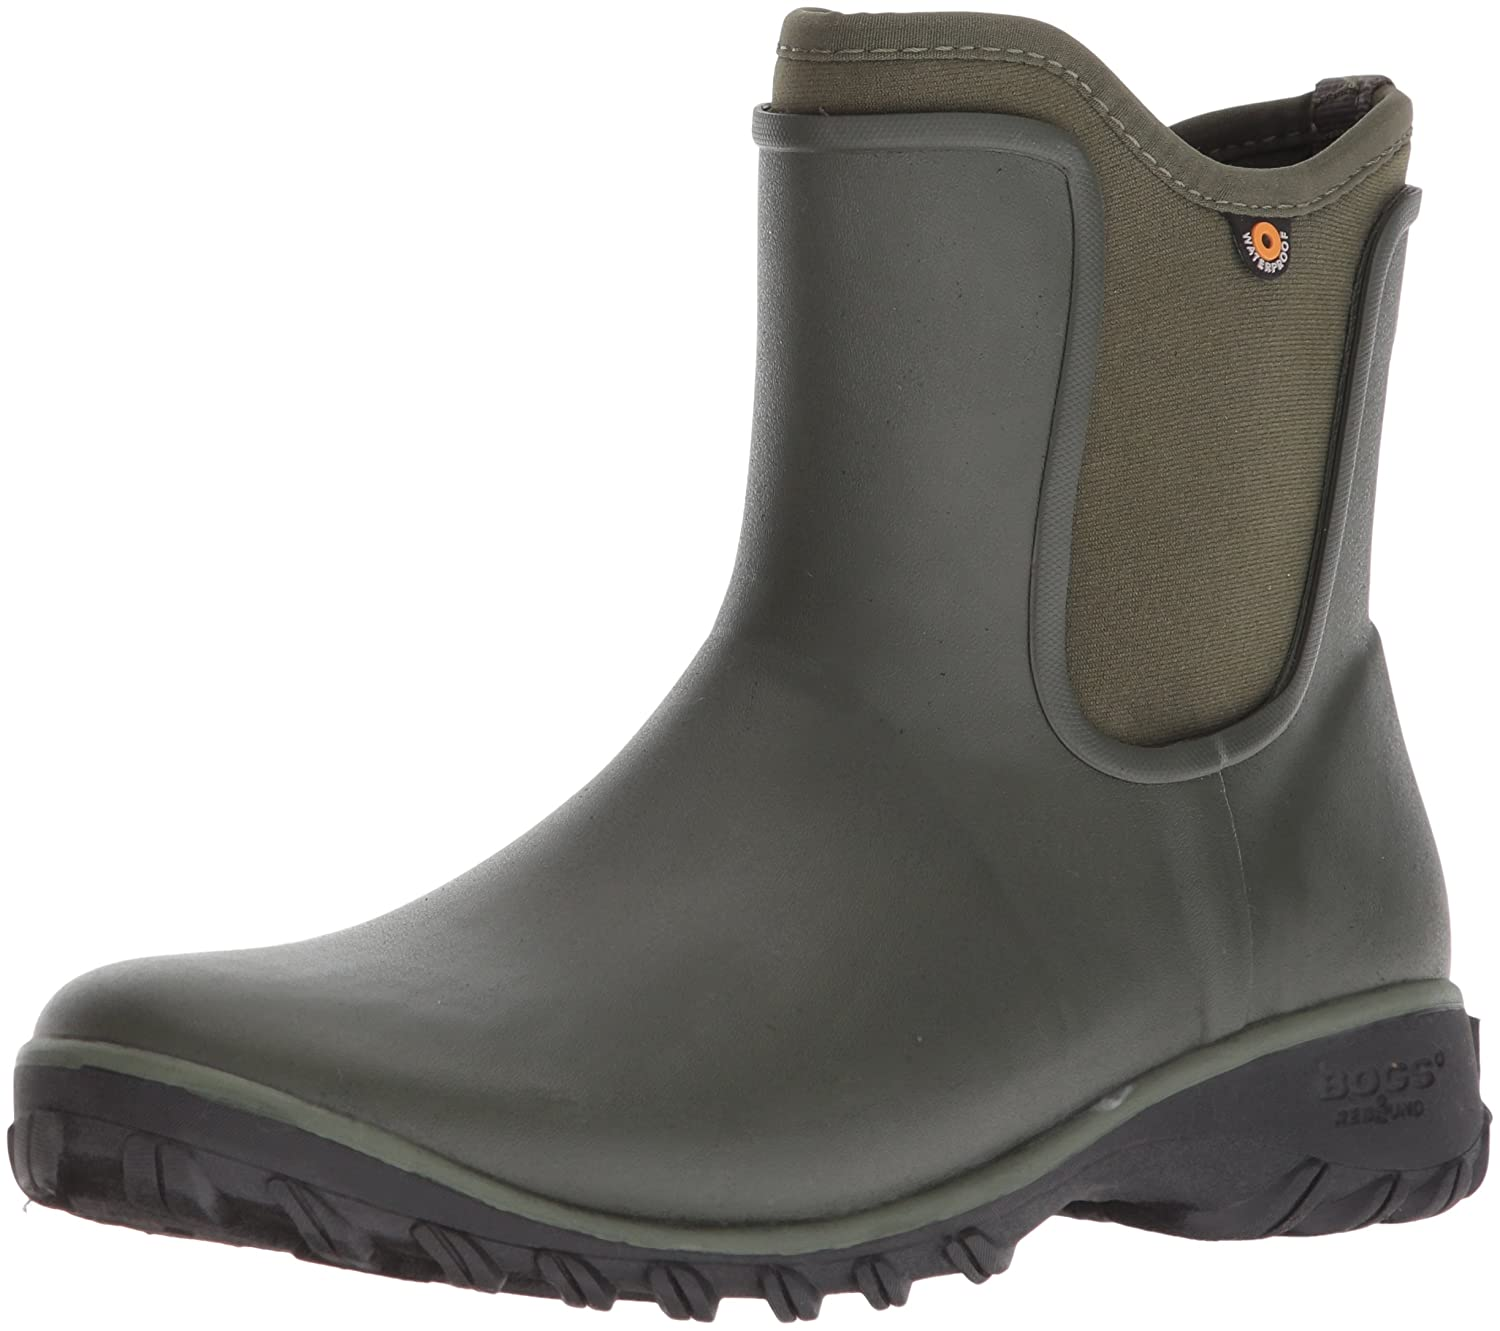 Bogs Women's Sauvie Slip Solid Rain Boot B073PK9FDR 8 B(M) US|Sage